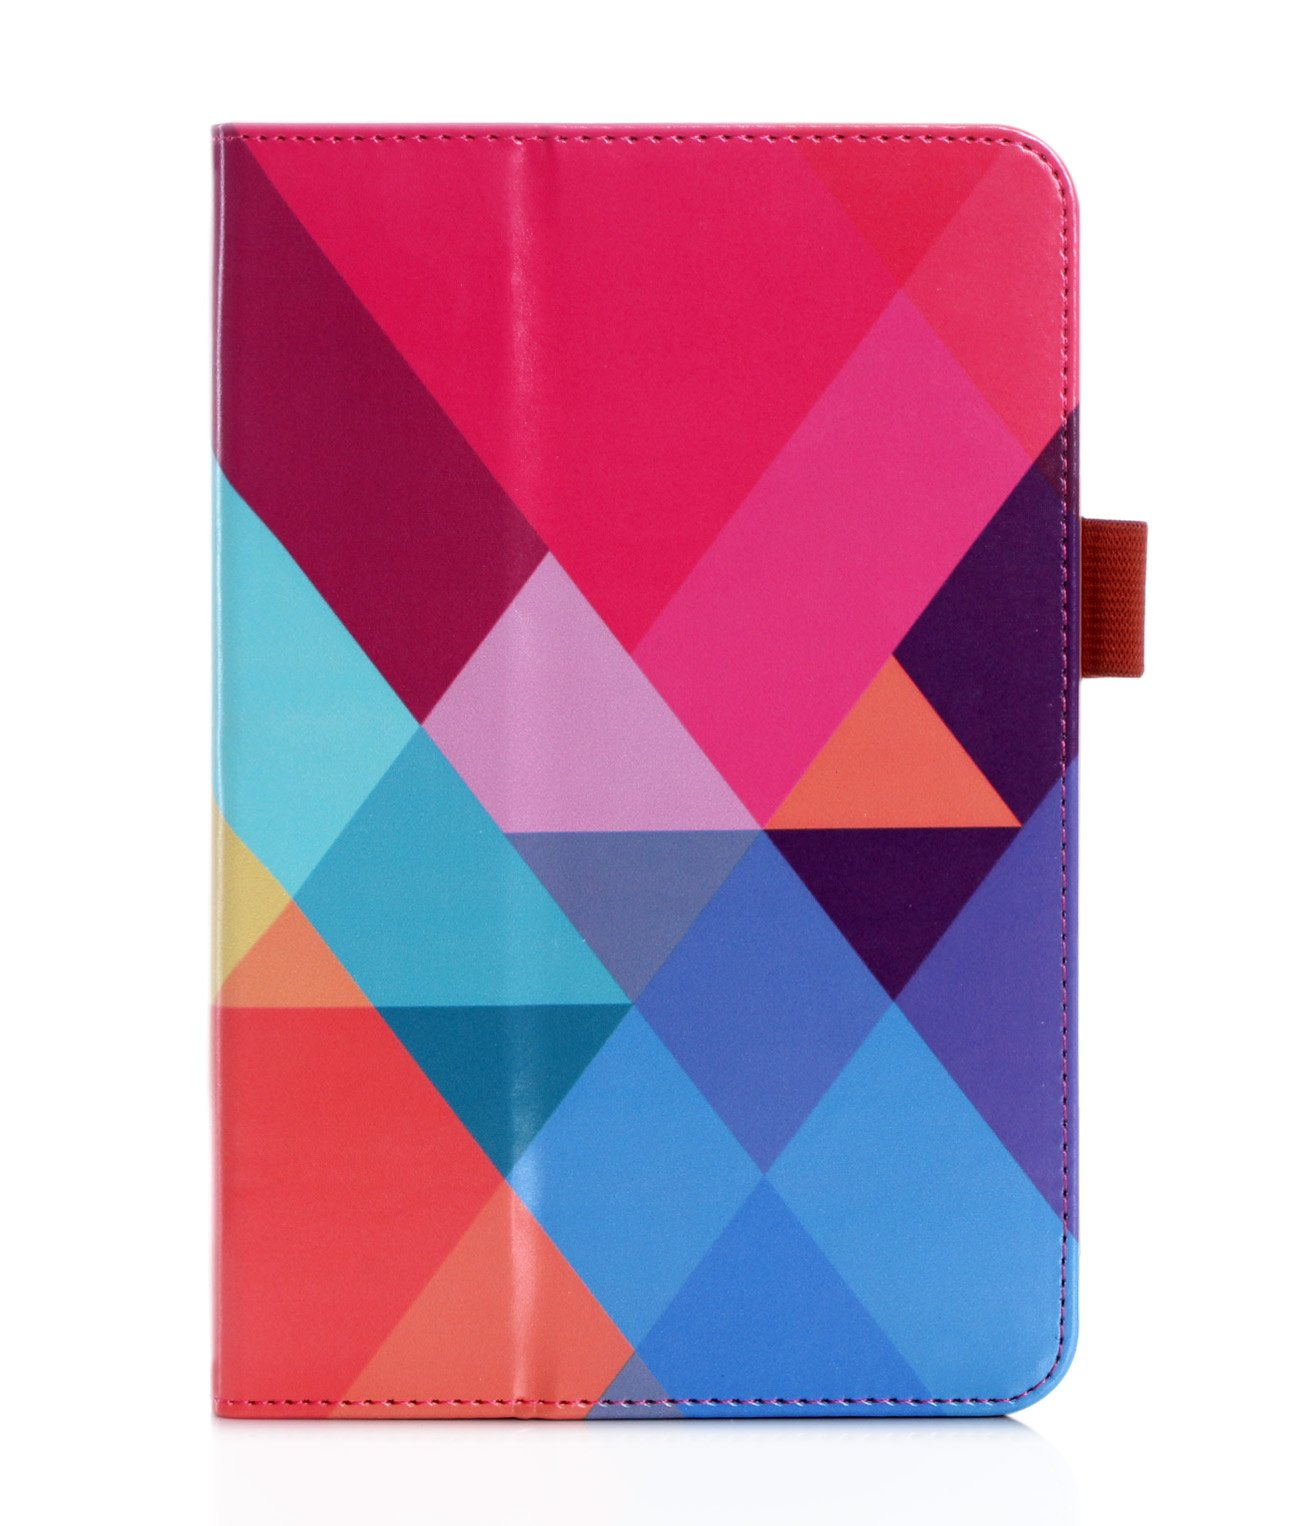 FYY Case for Samsung Galaxy Tab S2 9.7 - Premium Leather Case Stand Cover with Card Slots, Note Holder, Elastic Strap for Samsung Galaxy Tab S2 9.7'' Pattern 15 (With Auto Wake/Sleep)